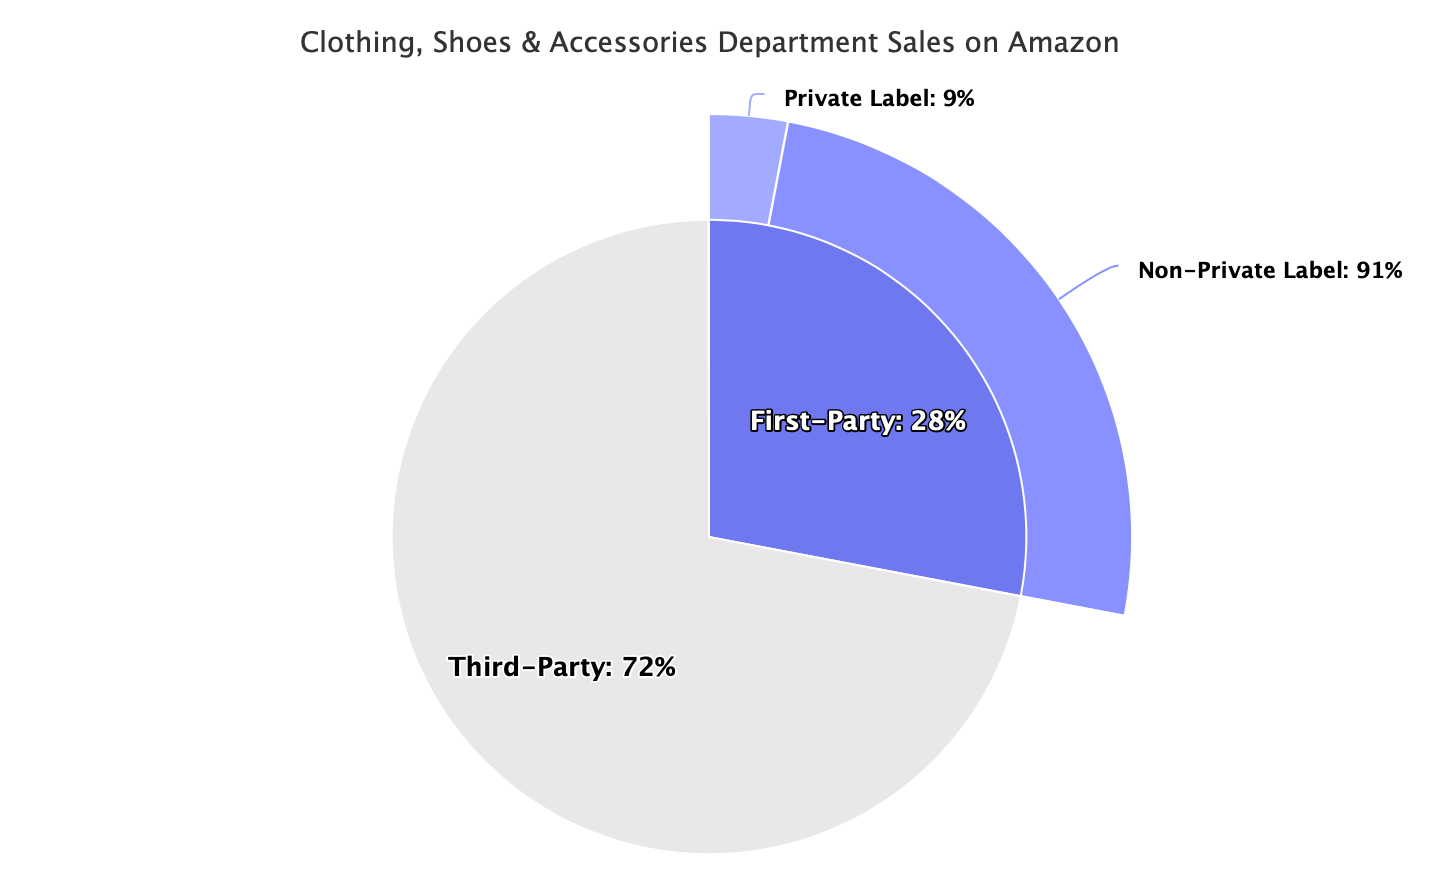 Clothing, Shoes & Accessories Department Sales on Amazon